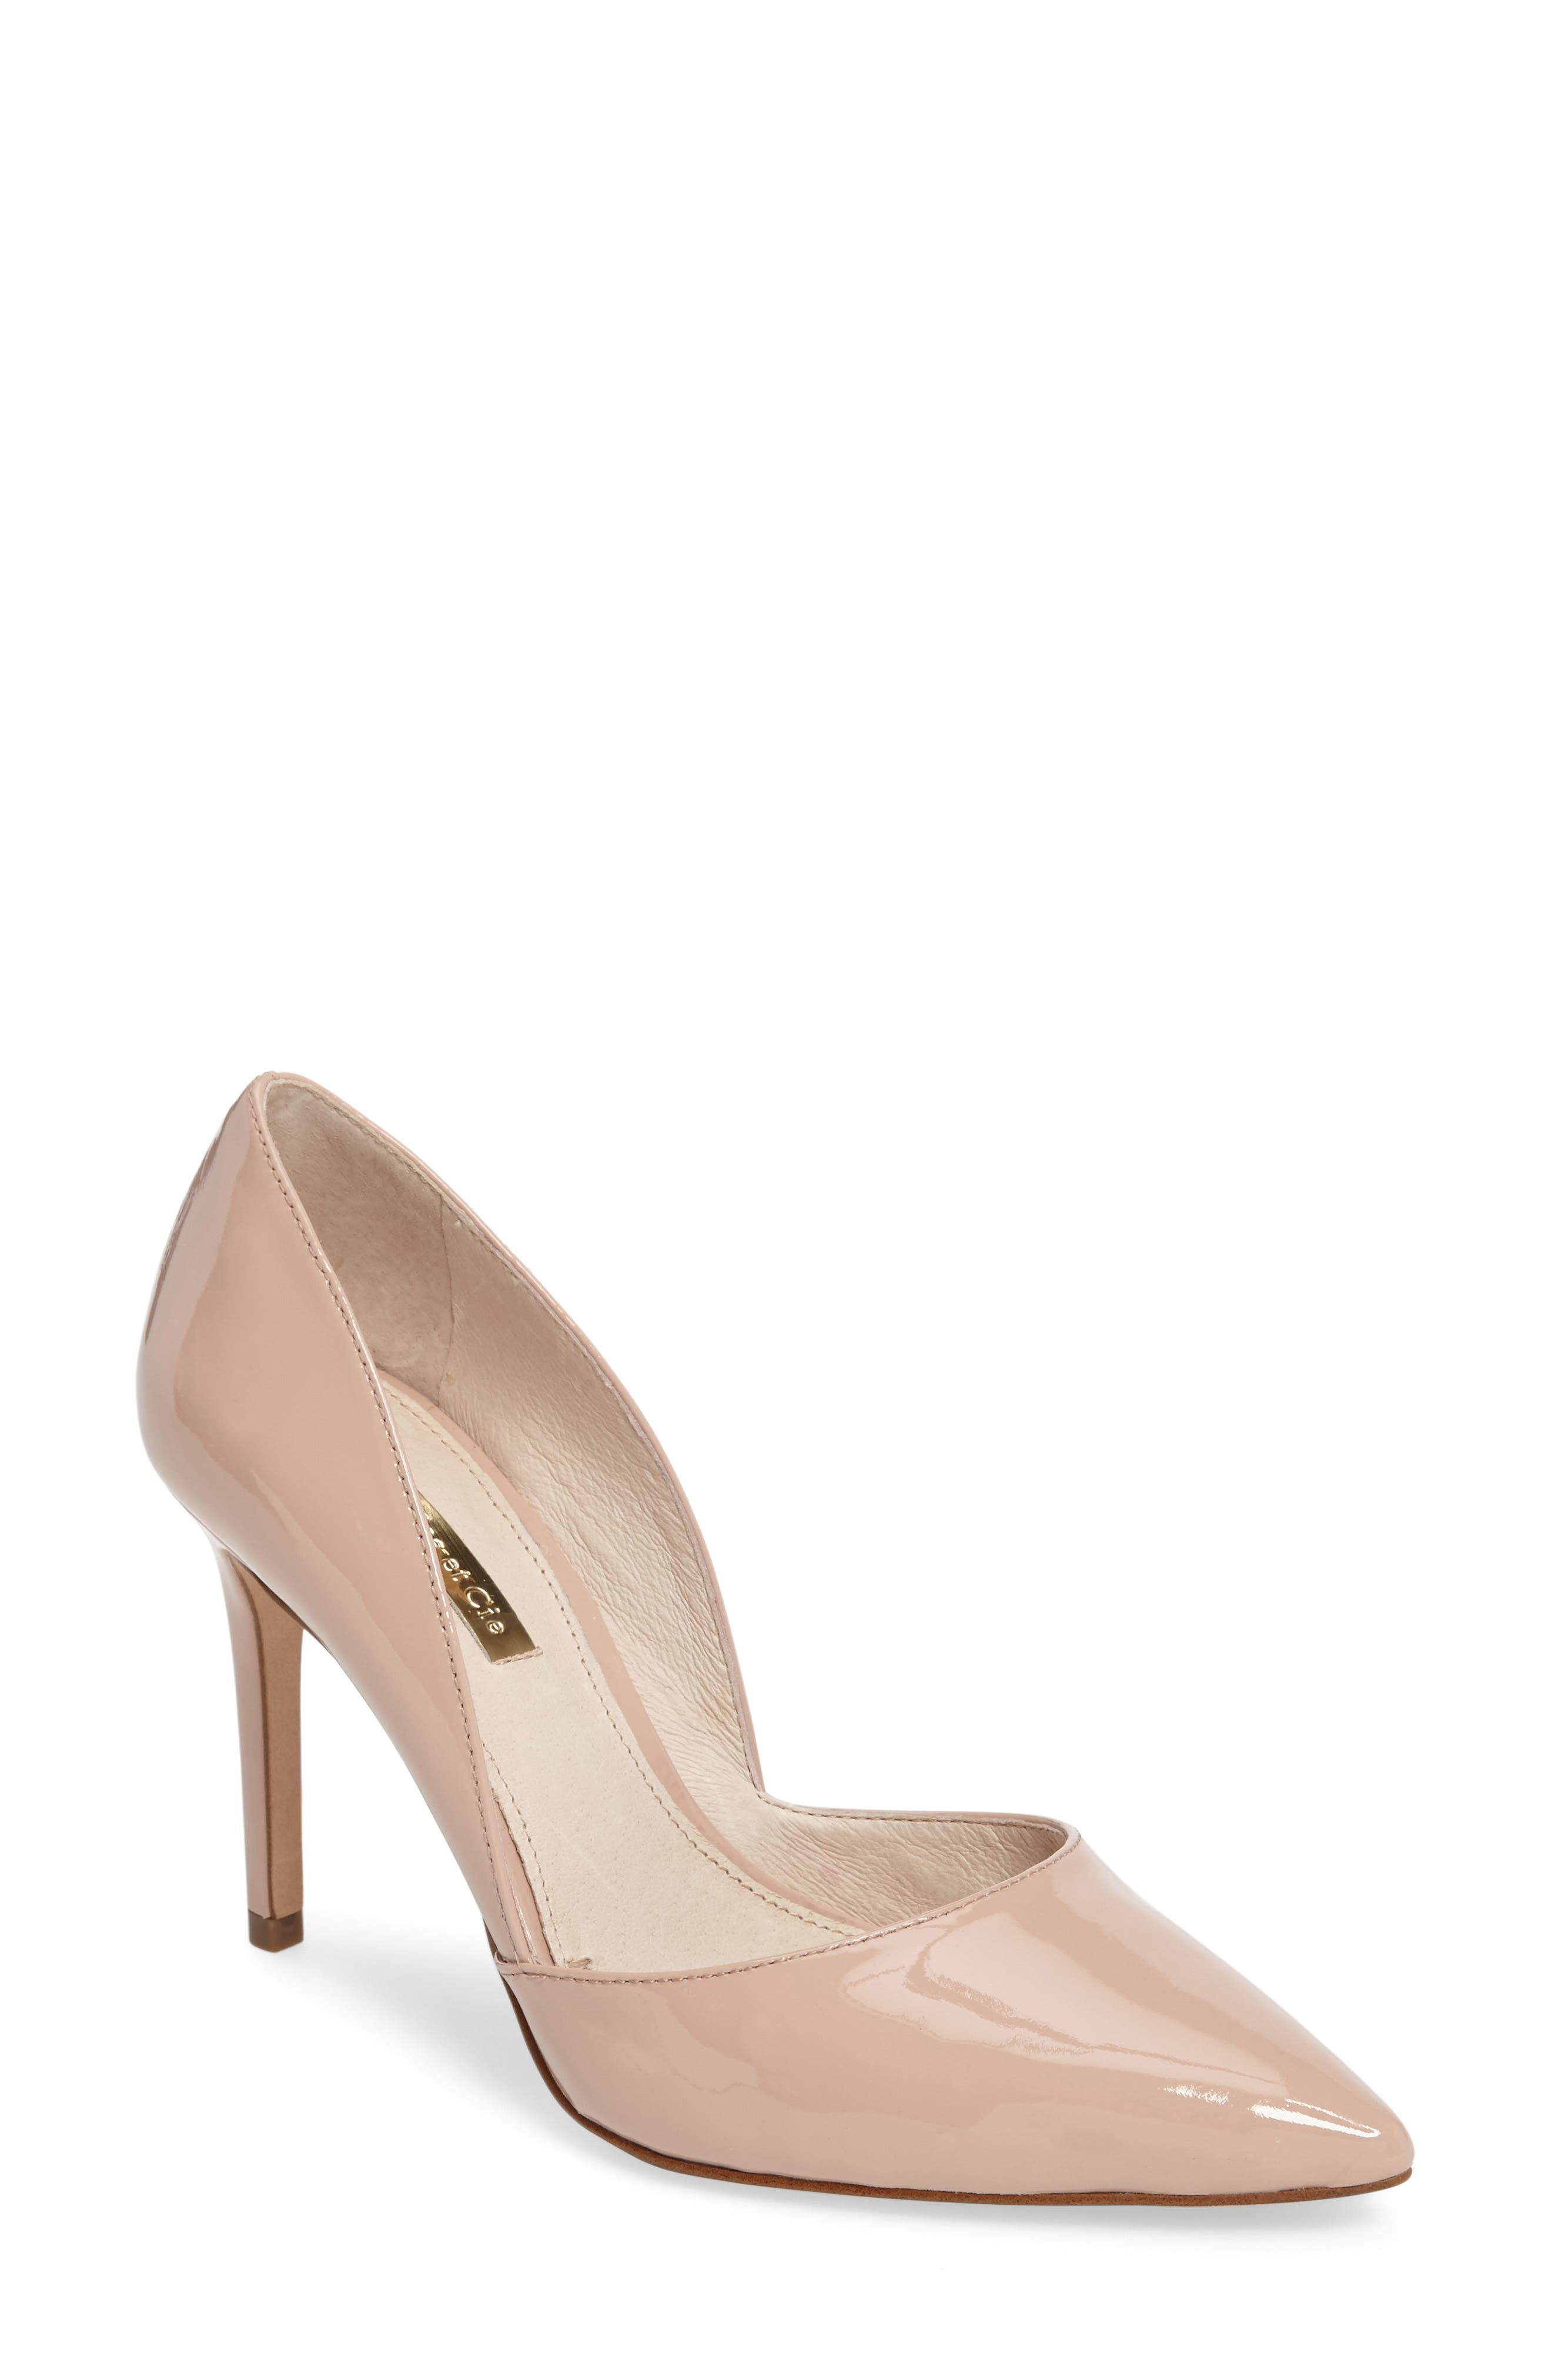 Alternate Image 1 Selected - Louise et Cie 'Hermosah' Pump (Women)